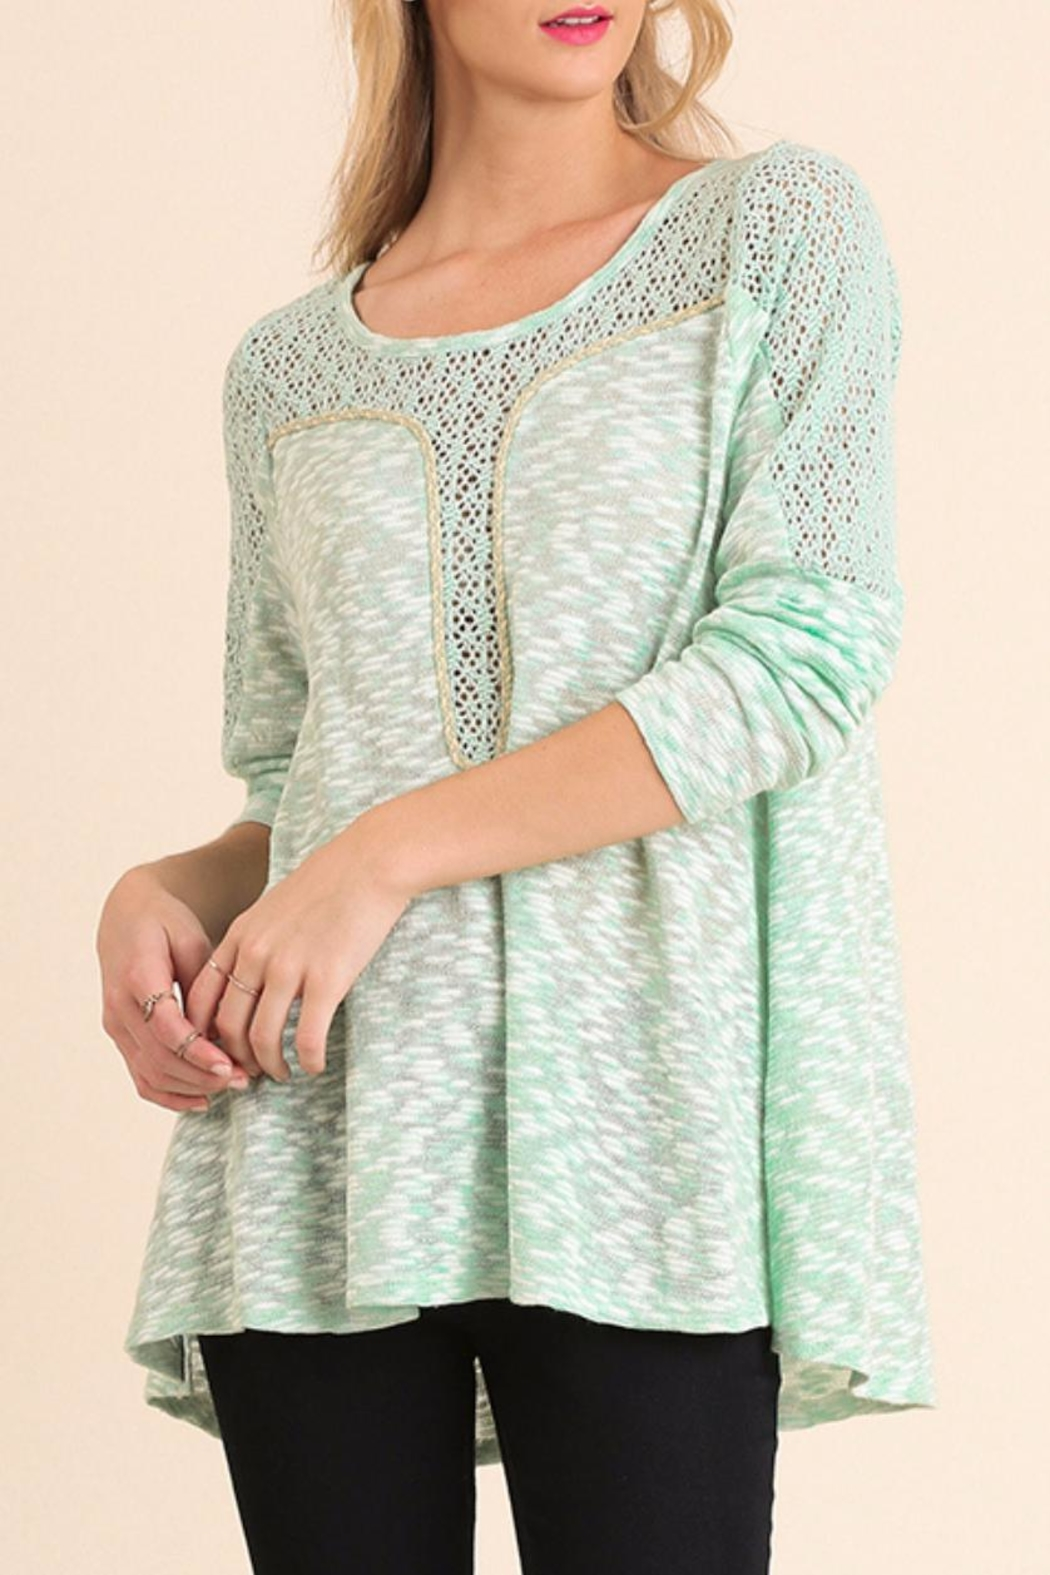 Umgee USA Marled Long Sleeve Top - Main Image